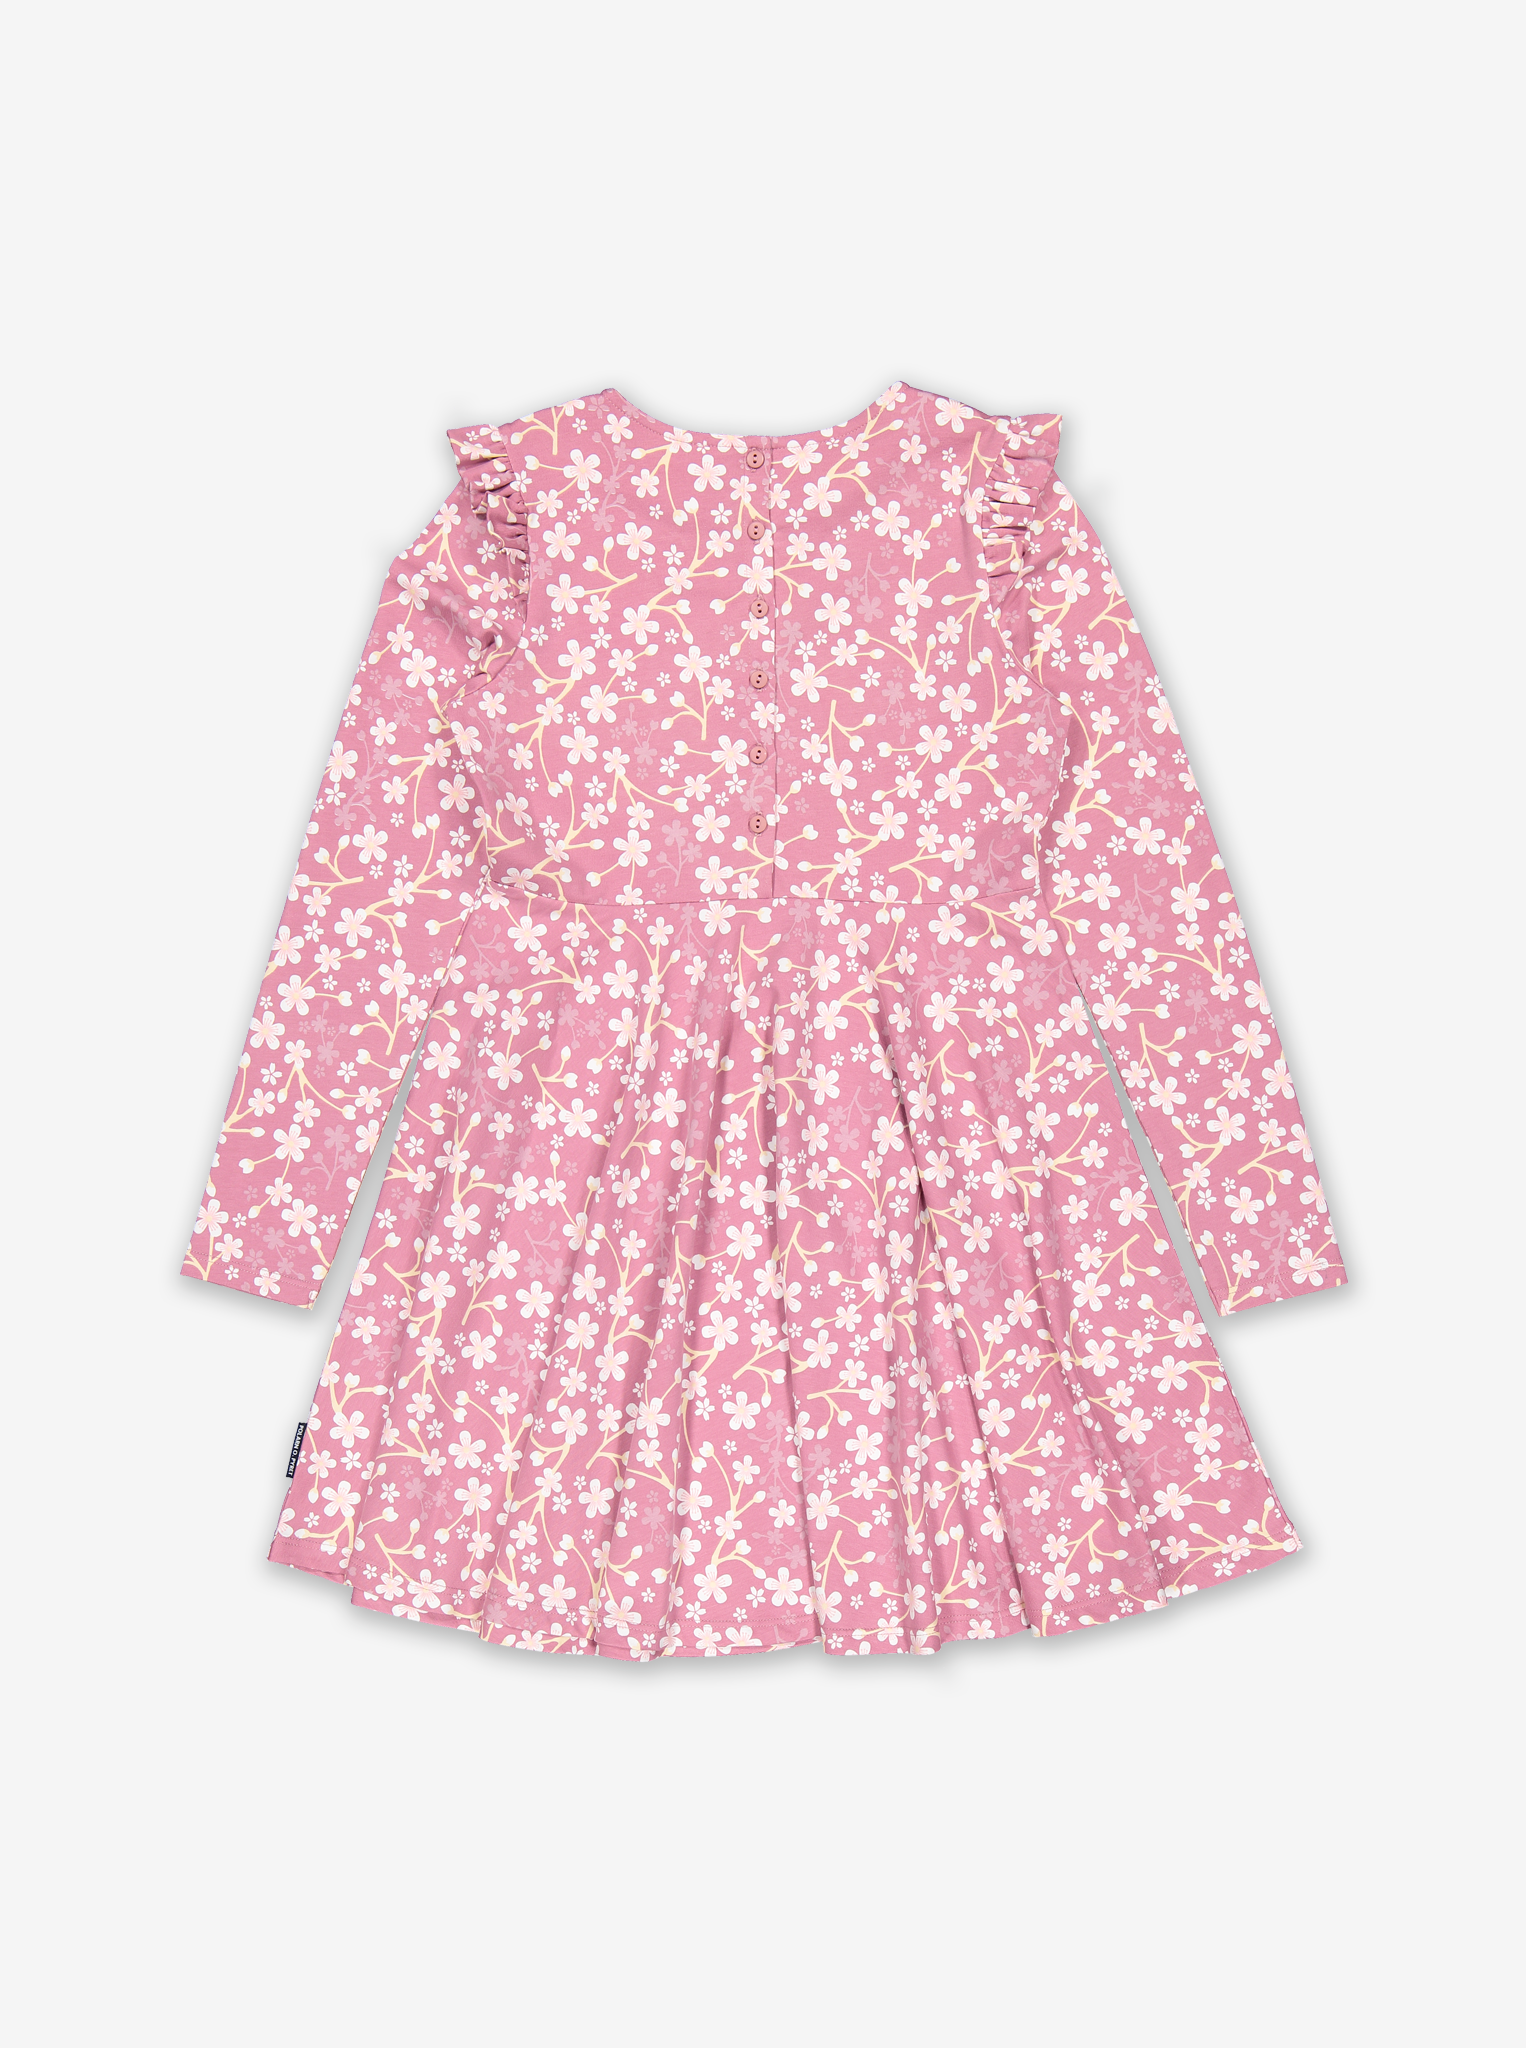 Blossom Print Kids Dress-Girl-6-12y-Pink